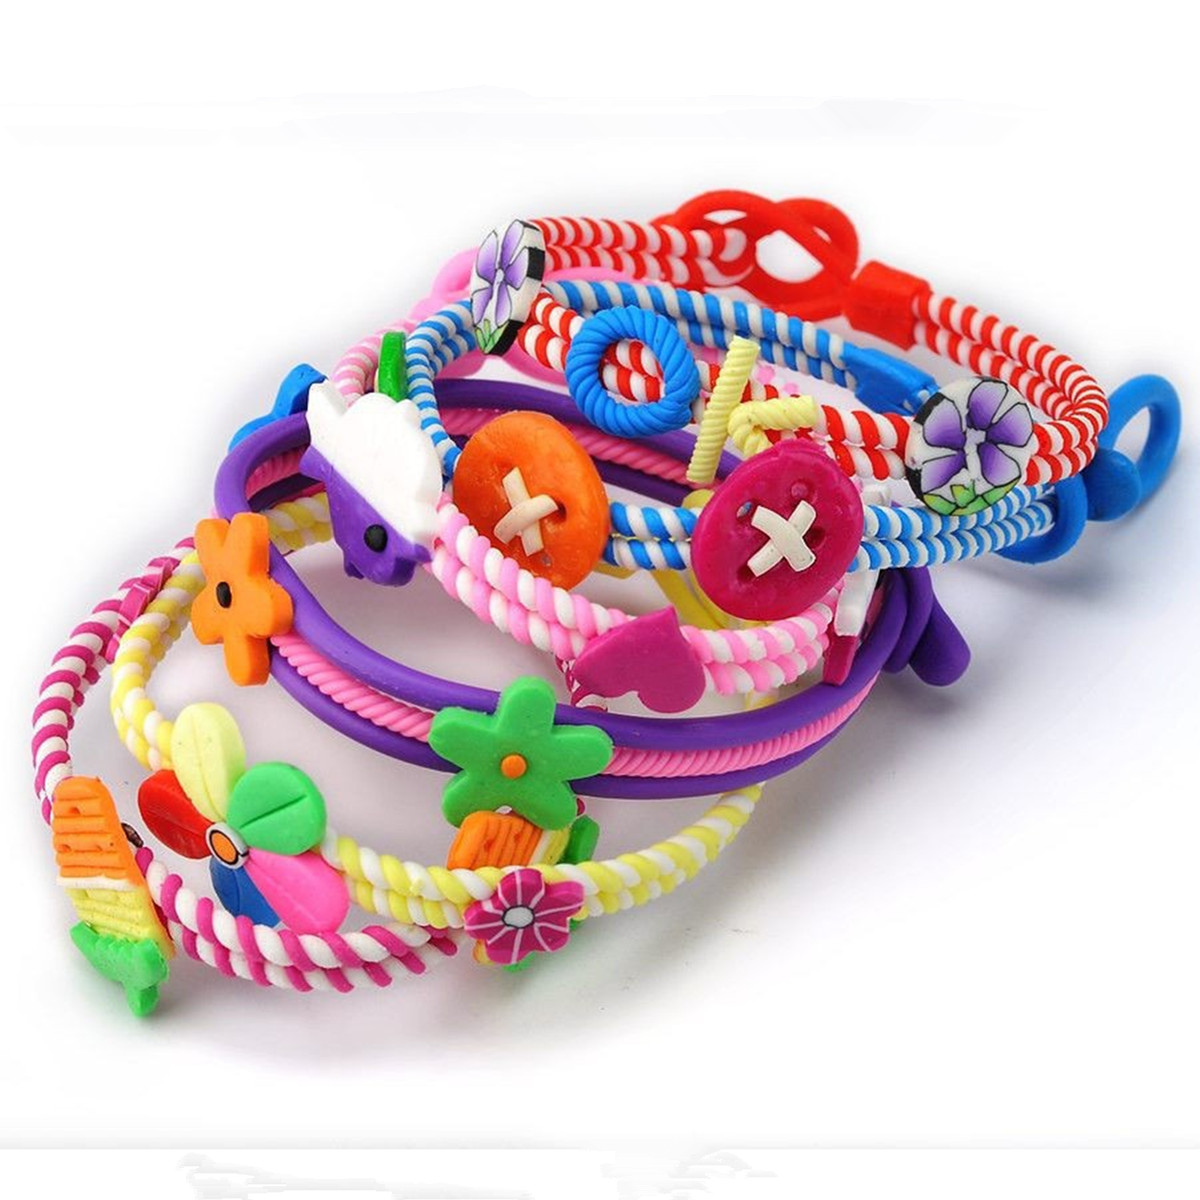 Sweet-Baby-Bangle-Jewelry-Polymer-Clay-Kids-Children-Bracelets-Wrist-band thumbnail 2